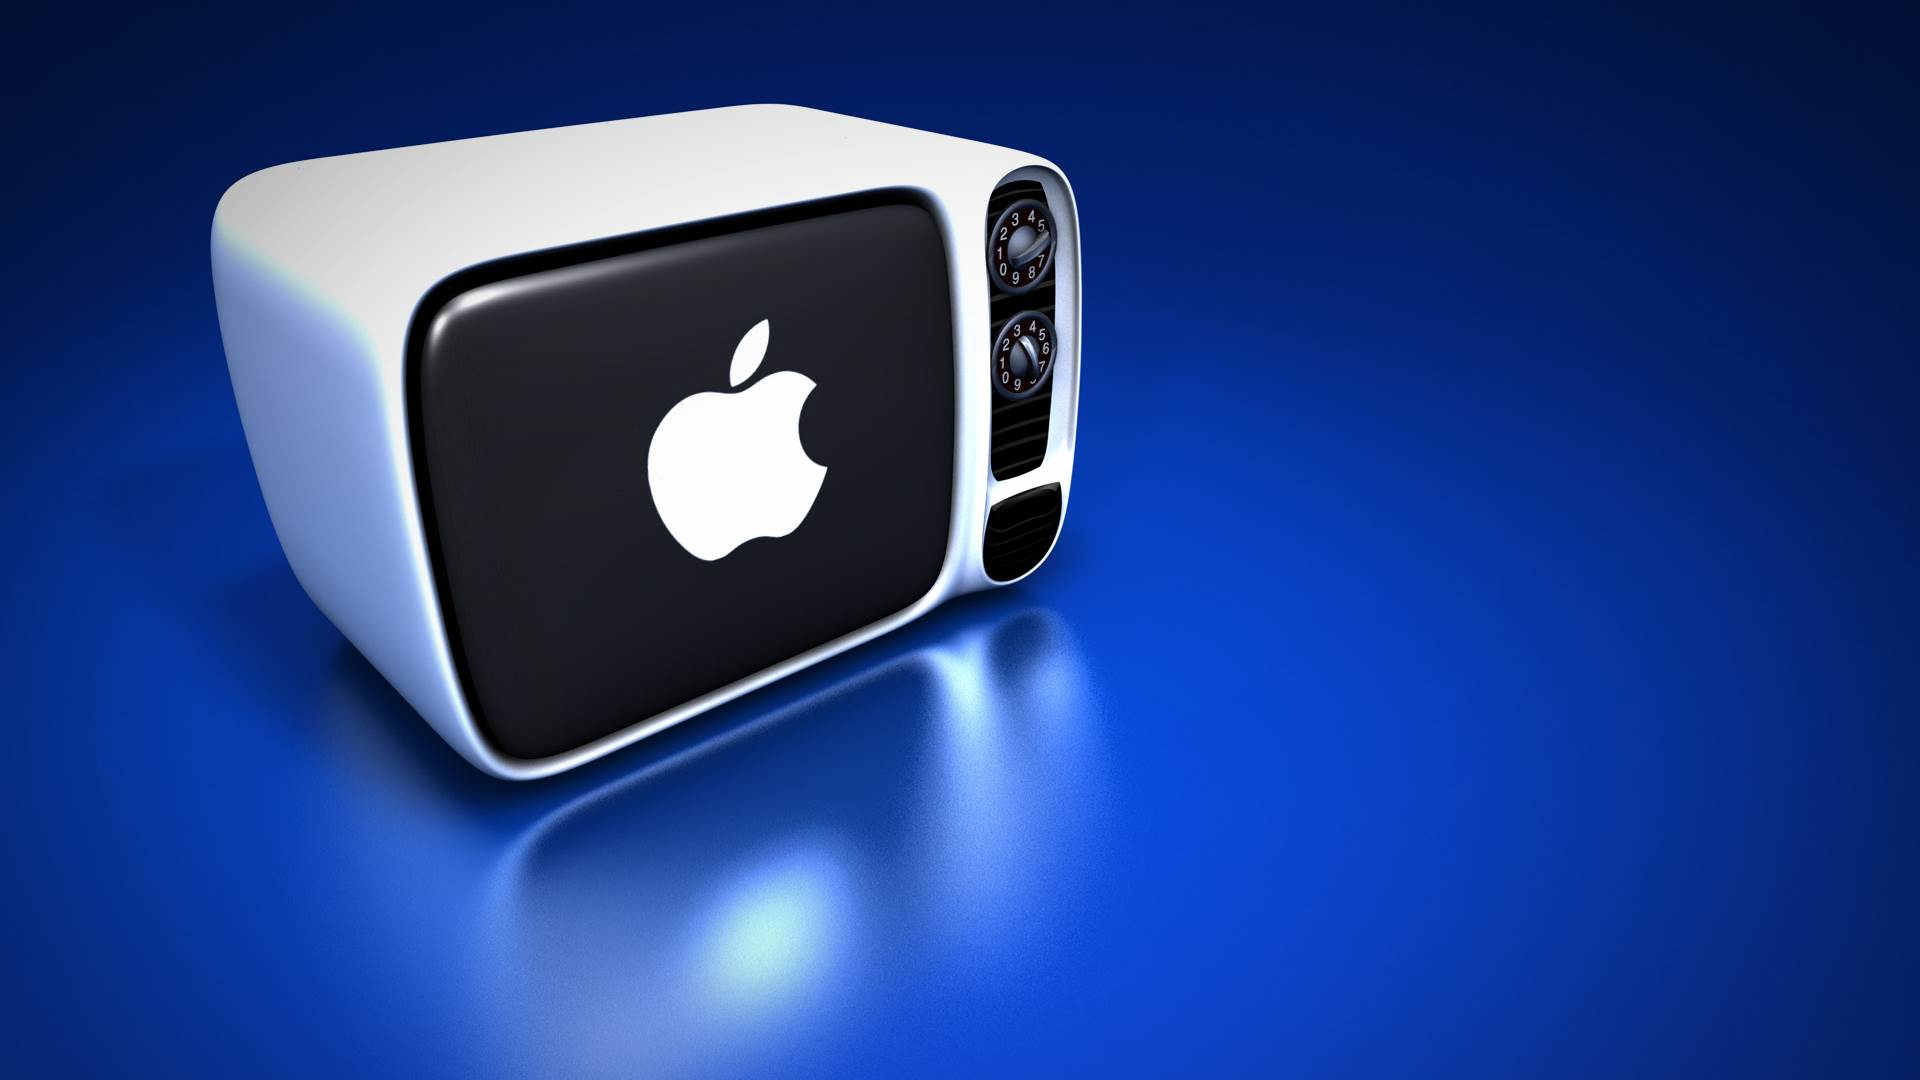 Inspiring Apple Mac \uamp; iPad Wallpapers For Download 1920x1080